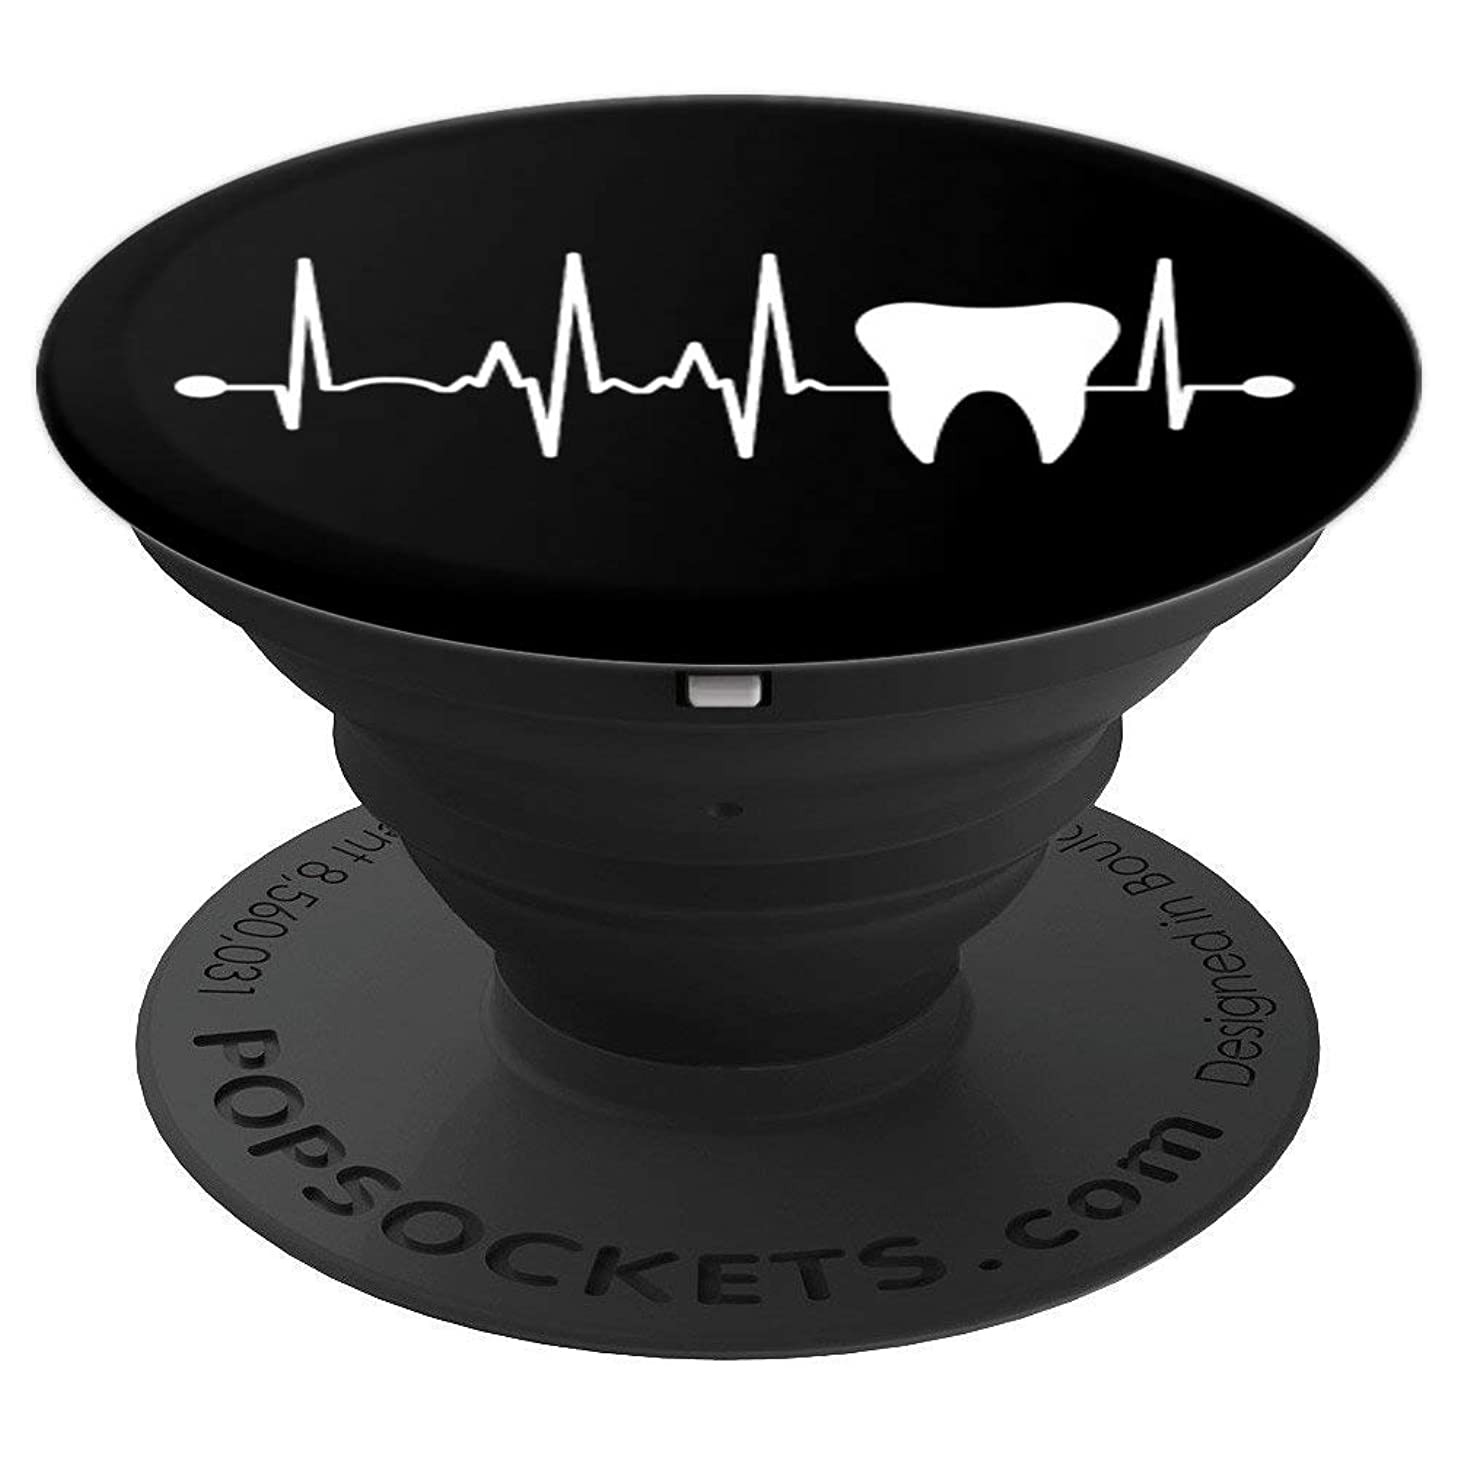 Tooth Heartbeat Dentist Dental Hygienist Assistant Gift PopSockets Grip and Stand for Phones and Tablets